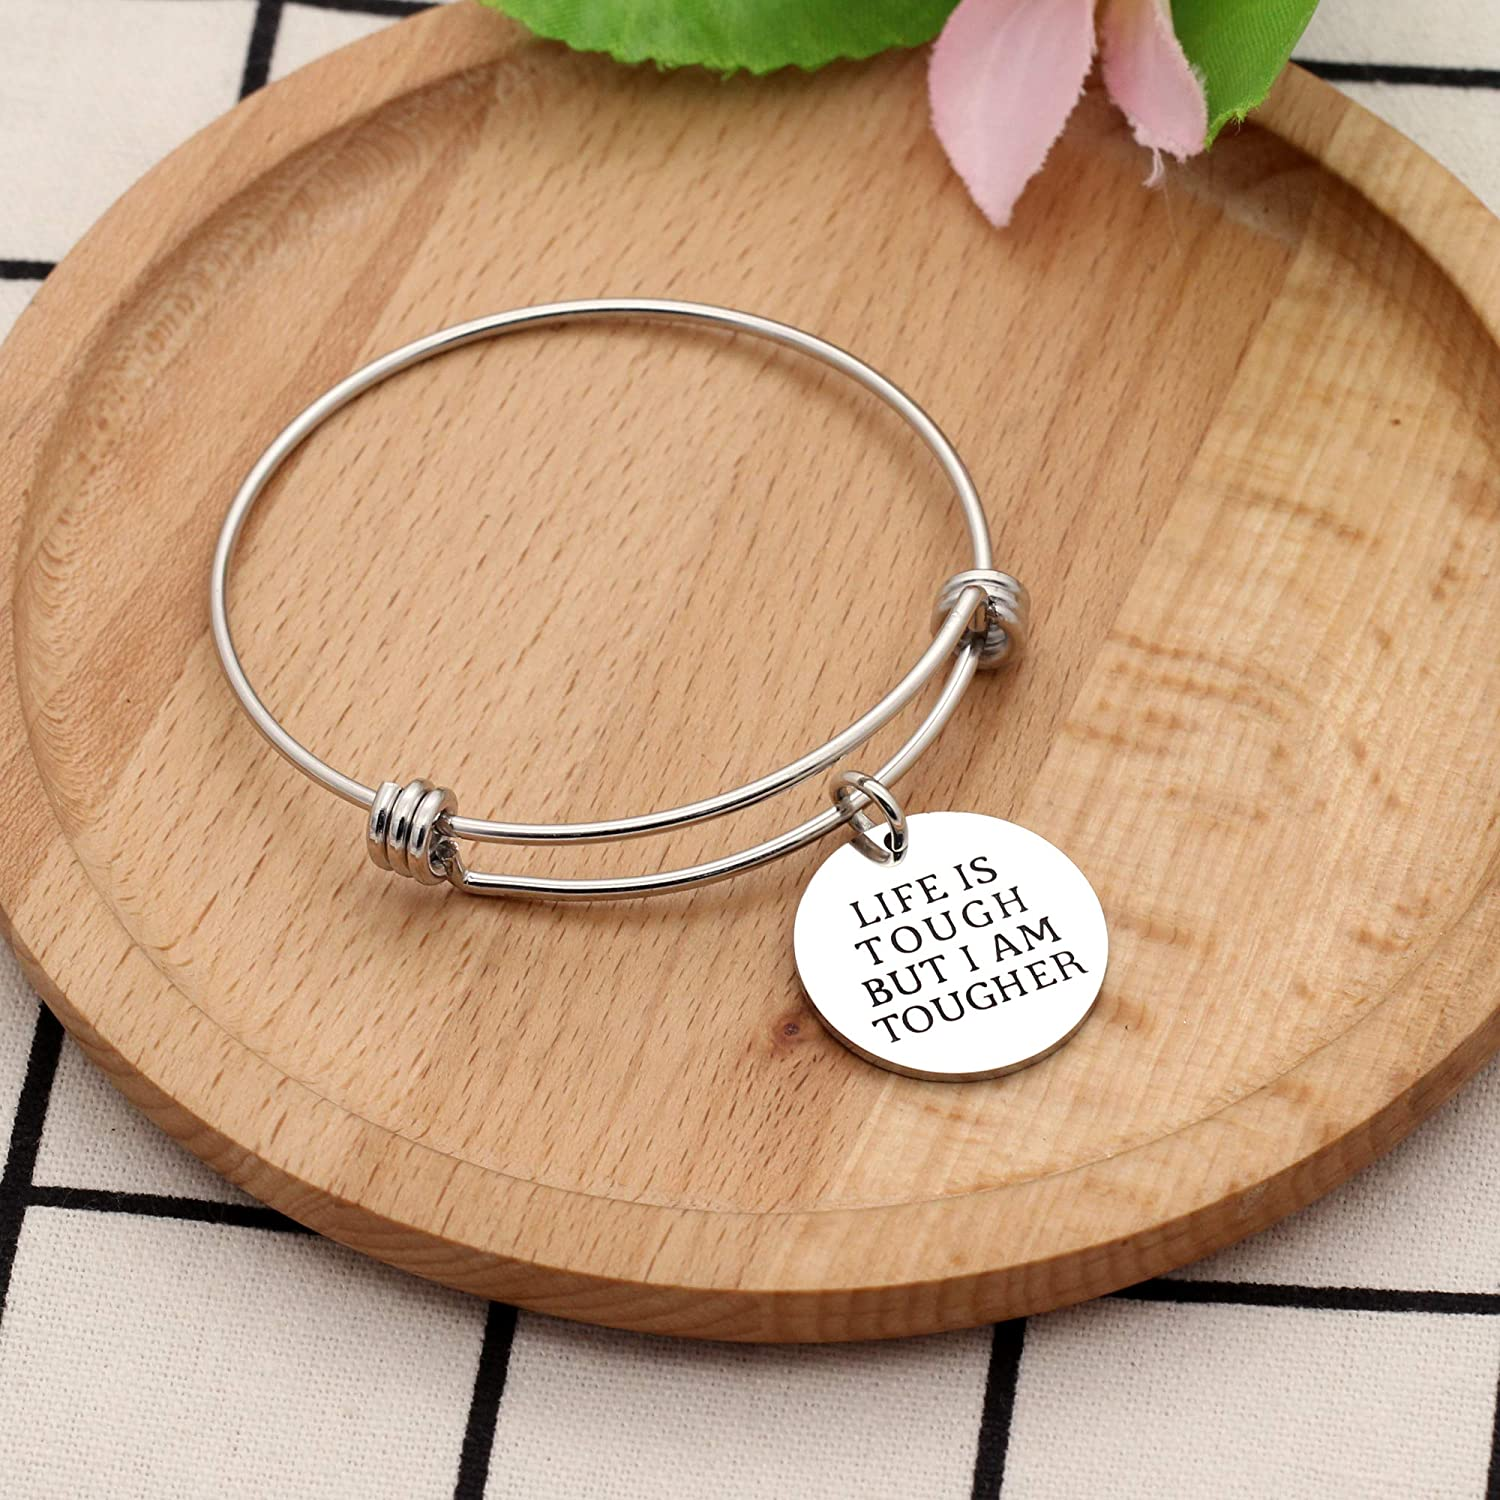 KENYG Life is Tough But I Am Tougher Silver Stainless Steel Women Adjustable Bracelet Bangles for Daughter Friends